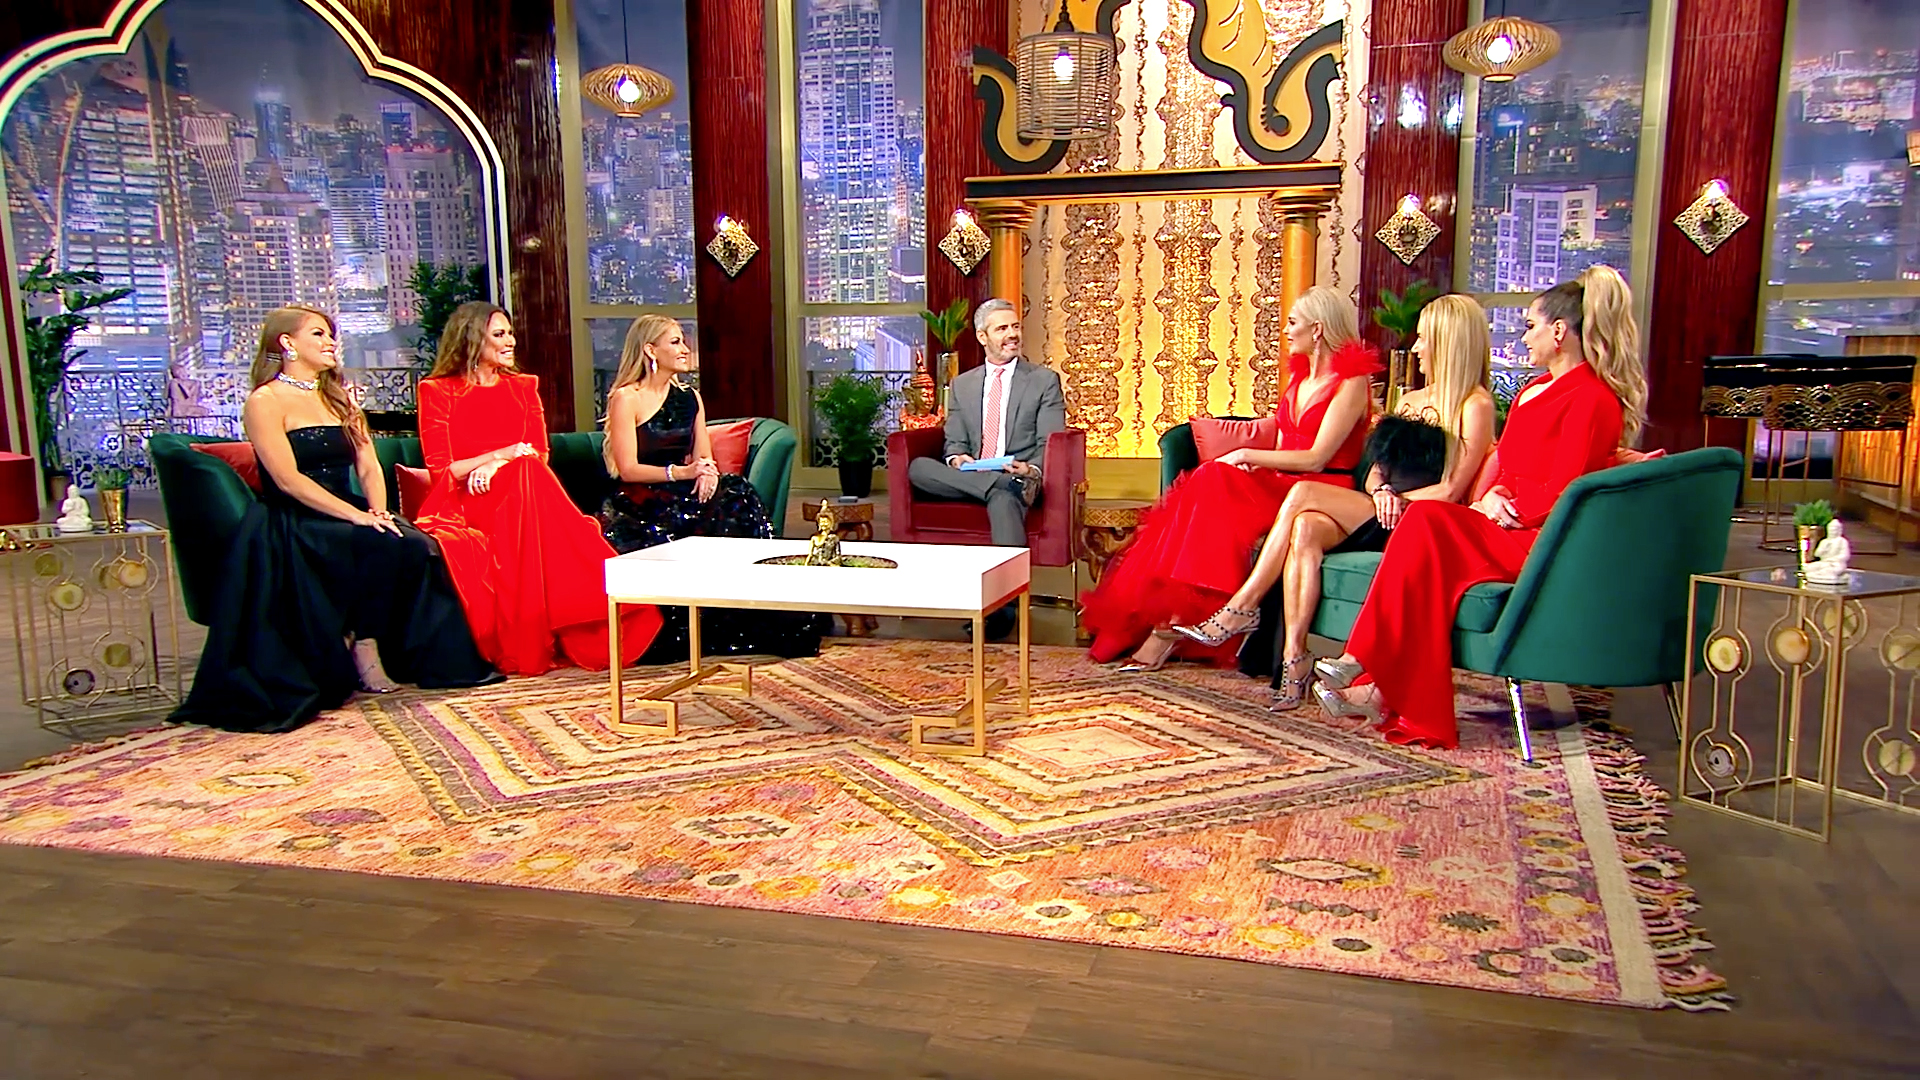 Here's What You Didn't See at The Real Housewives of Dallas Season 4 Reunion